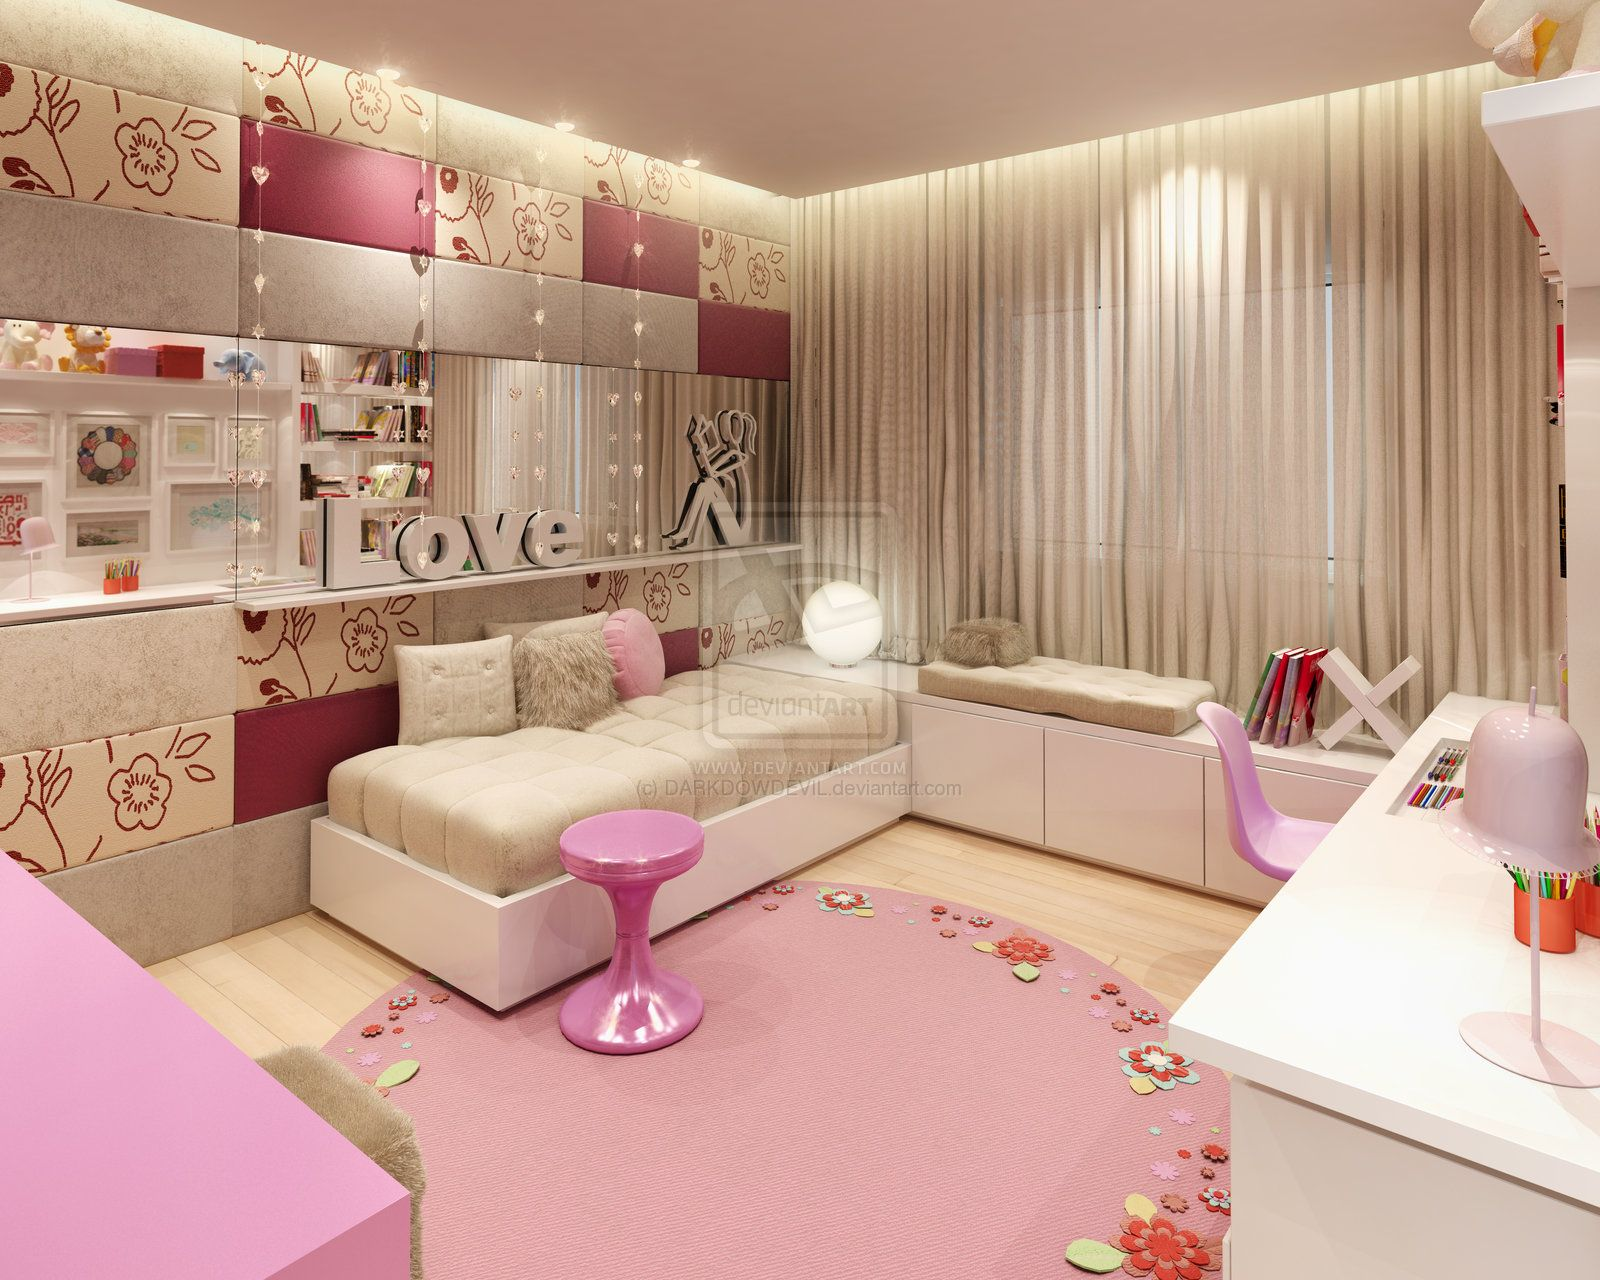 Rooms For Girl 30 Dream Interior Design Ideas For Teenage Girl's Rooms  Bedrooms